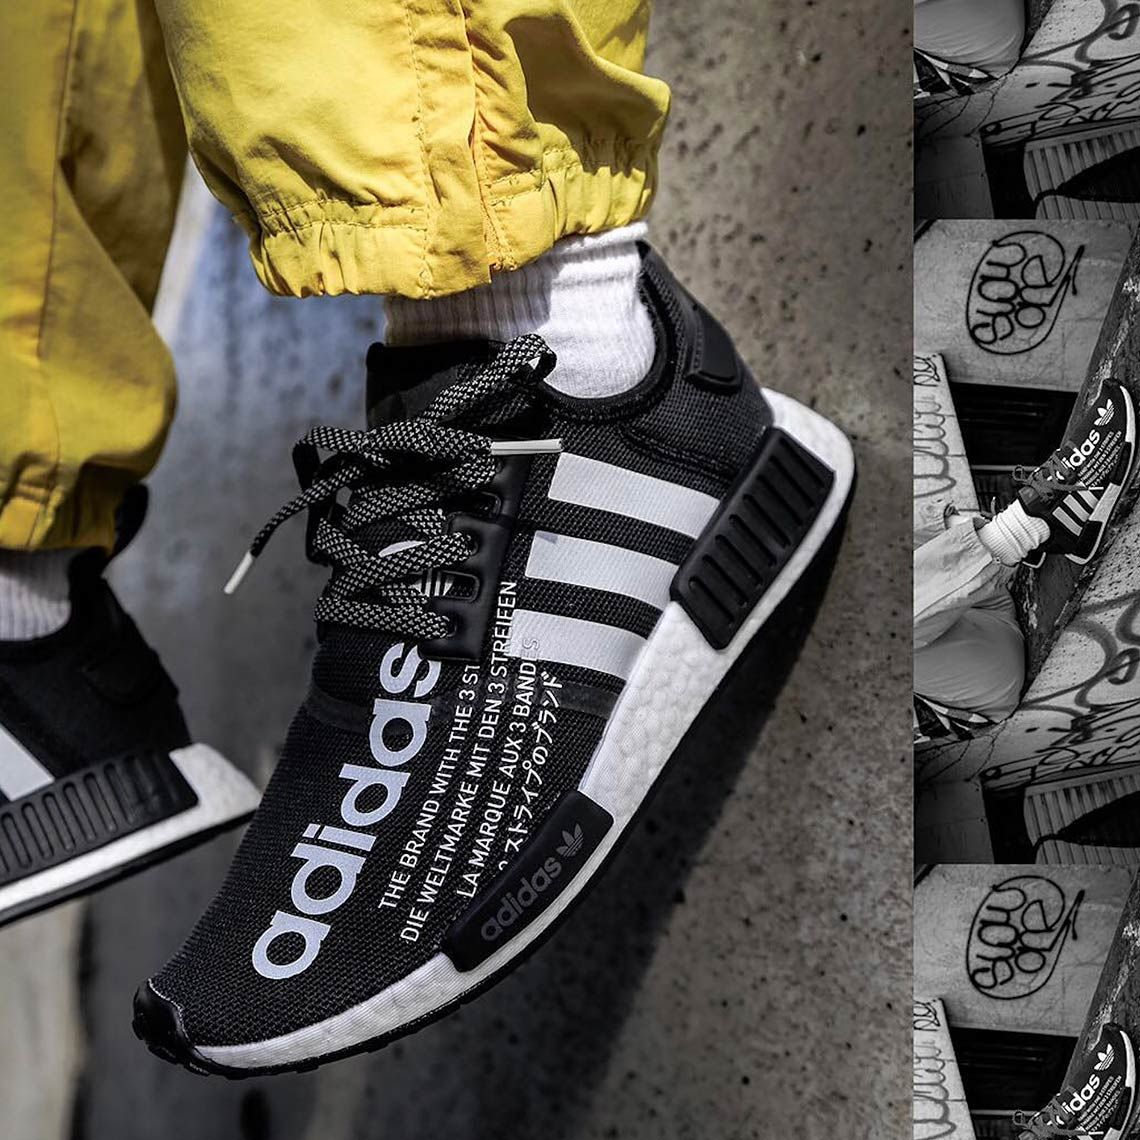 atmos adidas NMD R1 G27331 Release Date | for winter